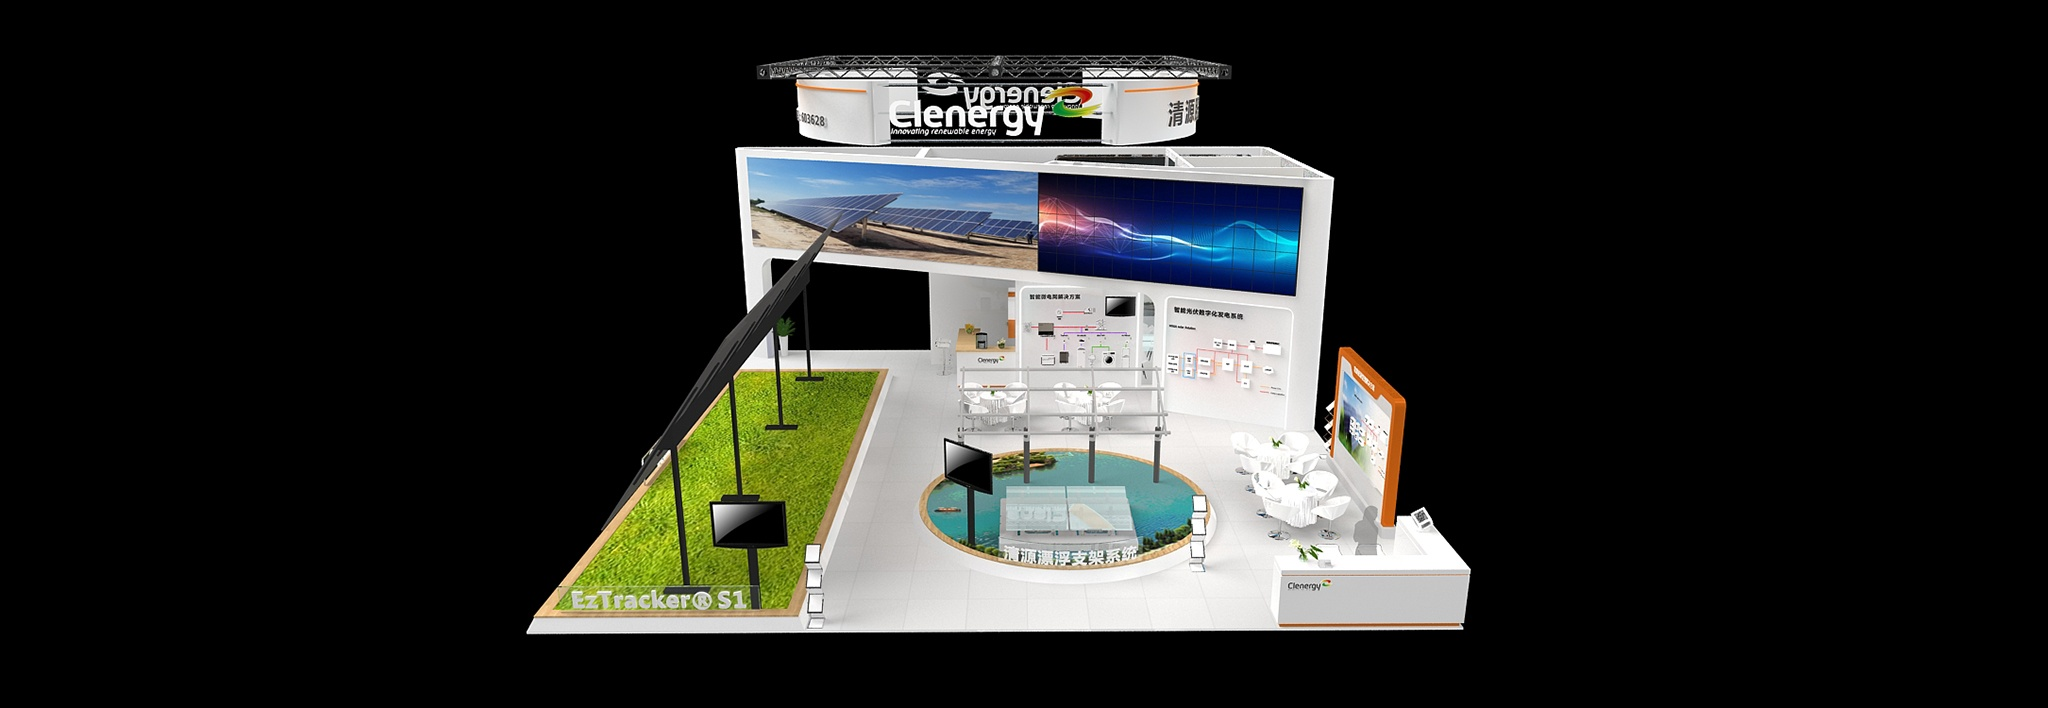 Clenergy Booth E4-310 at SNEC PV POWER EXPO 2019